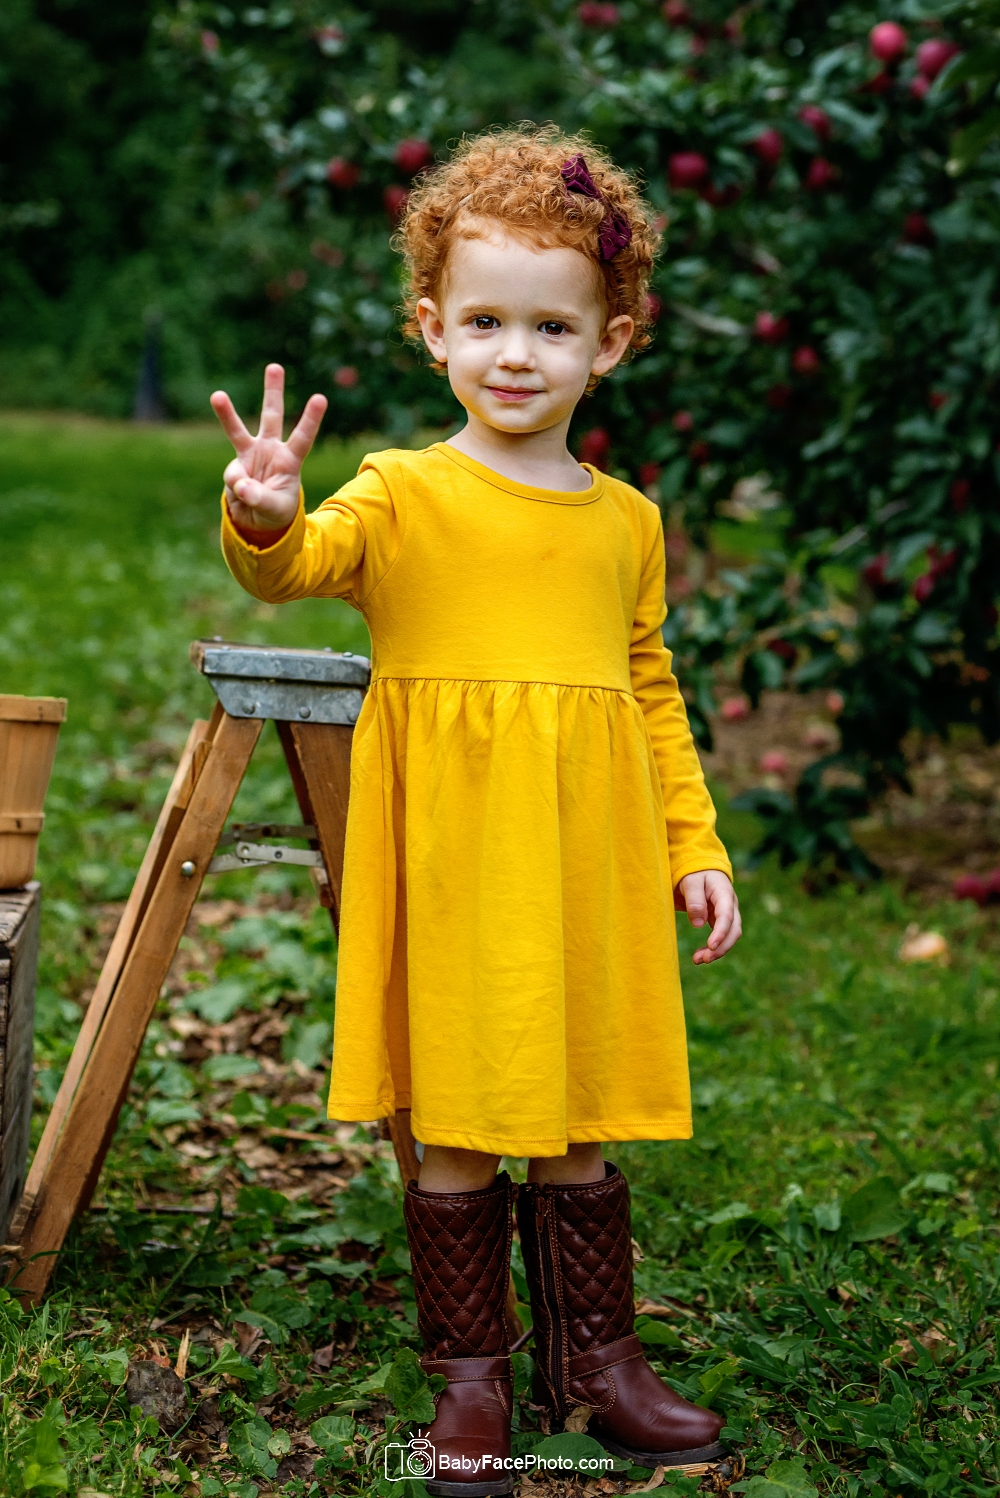 3 year old girl in apple orchard holding up 3 fingers